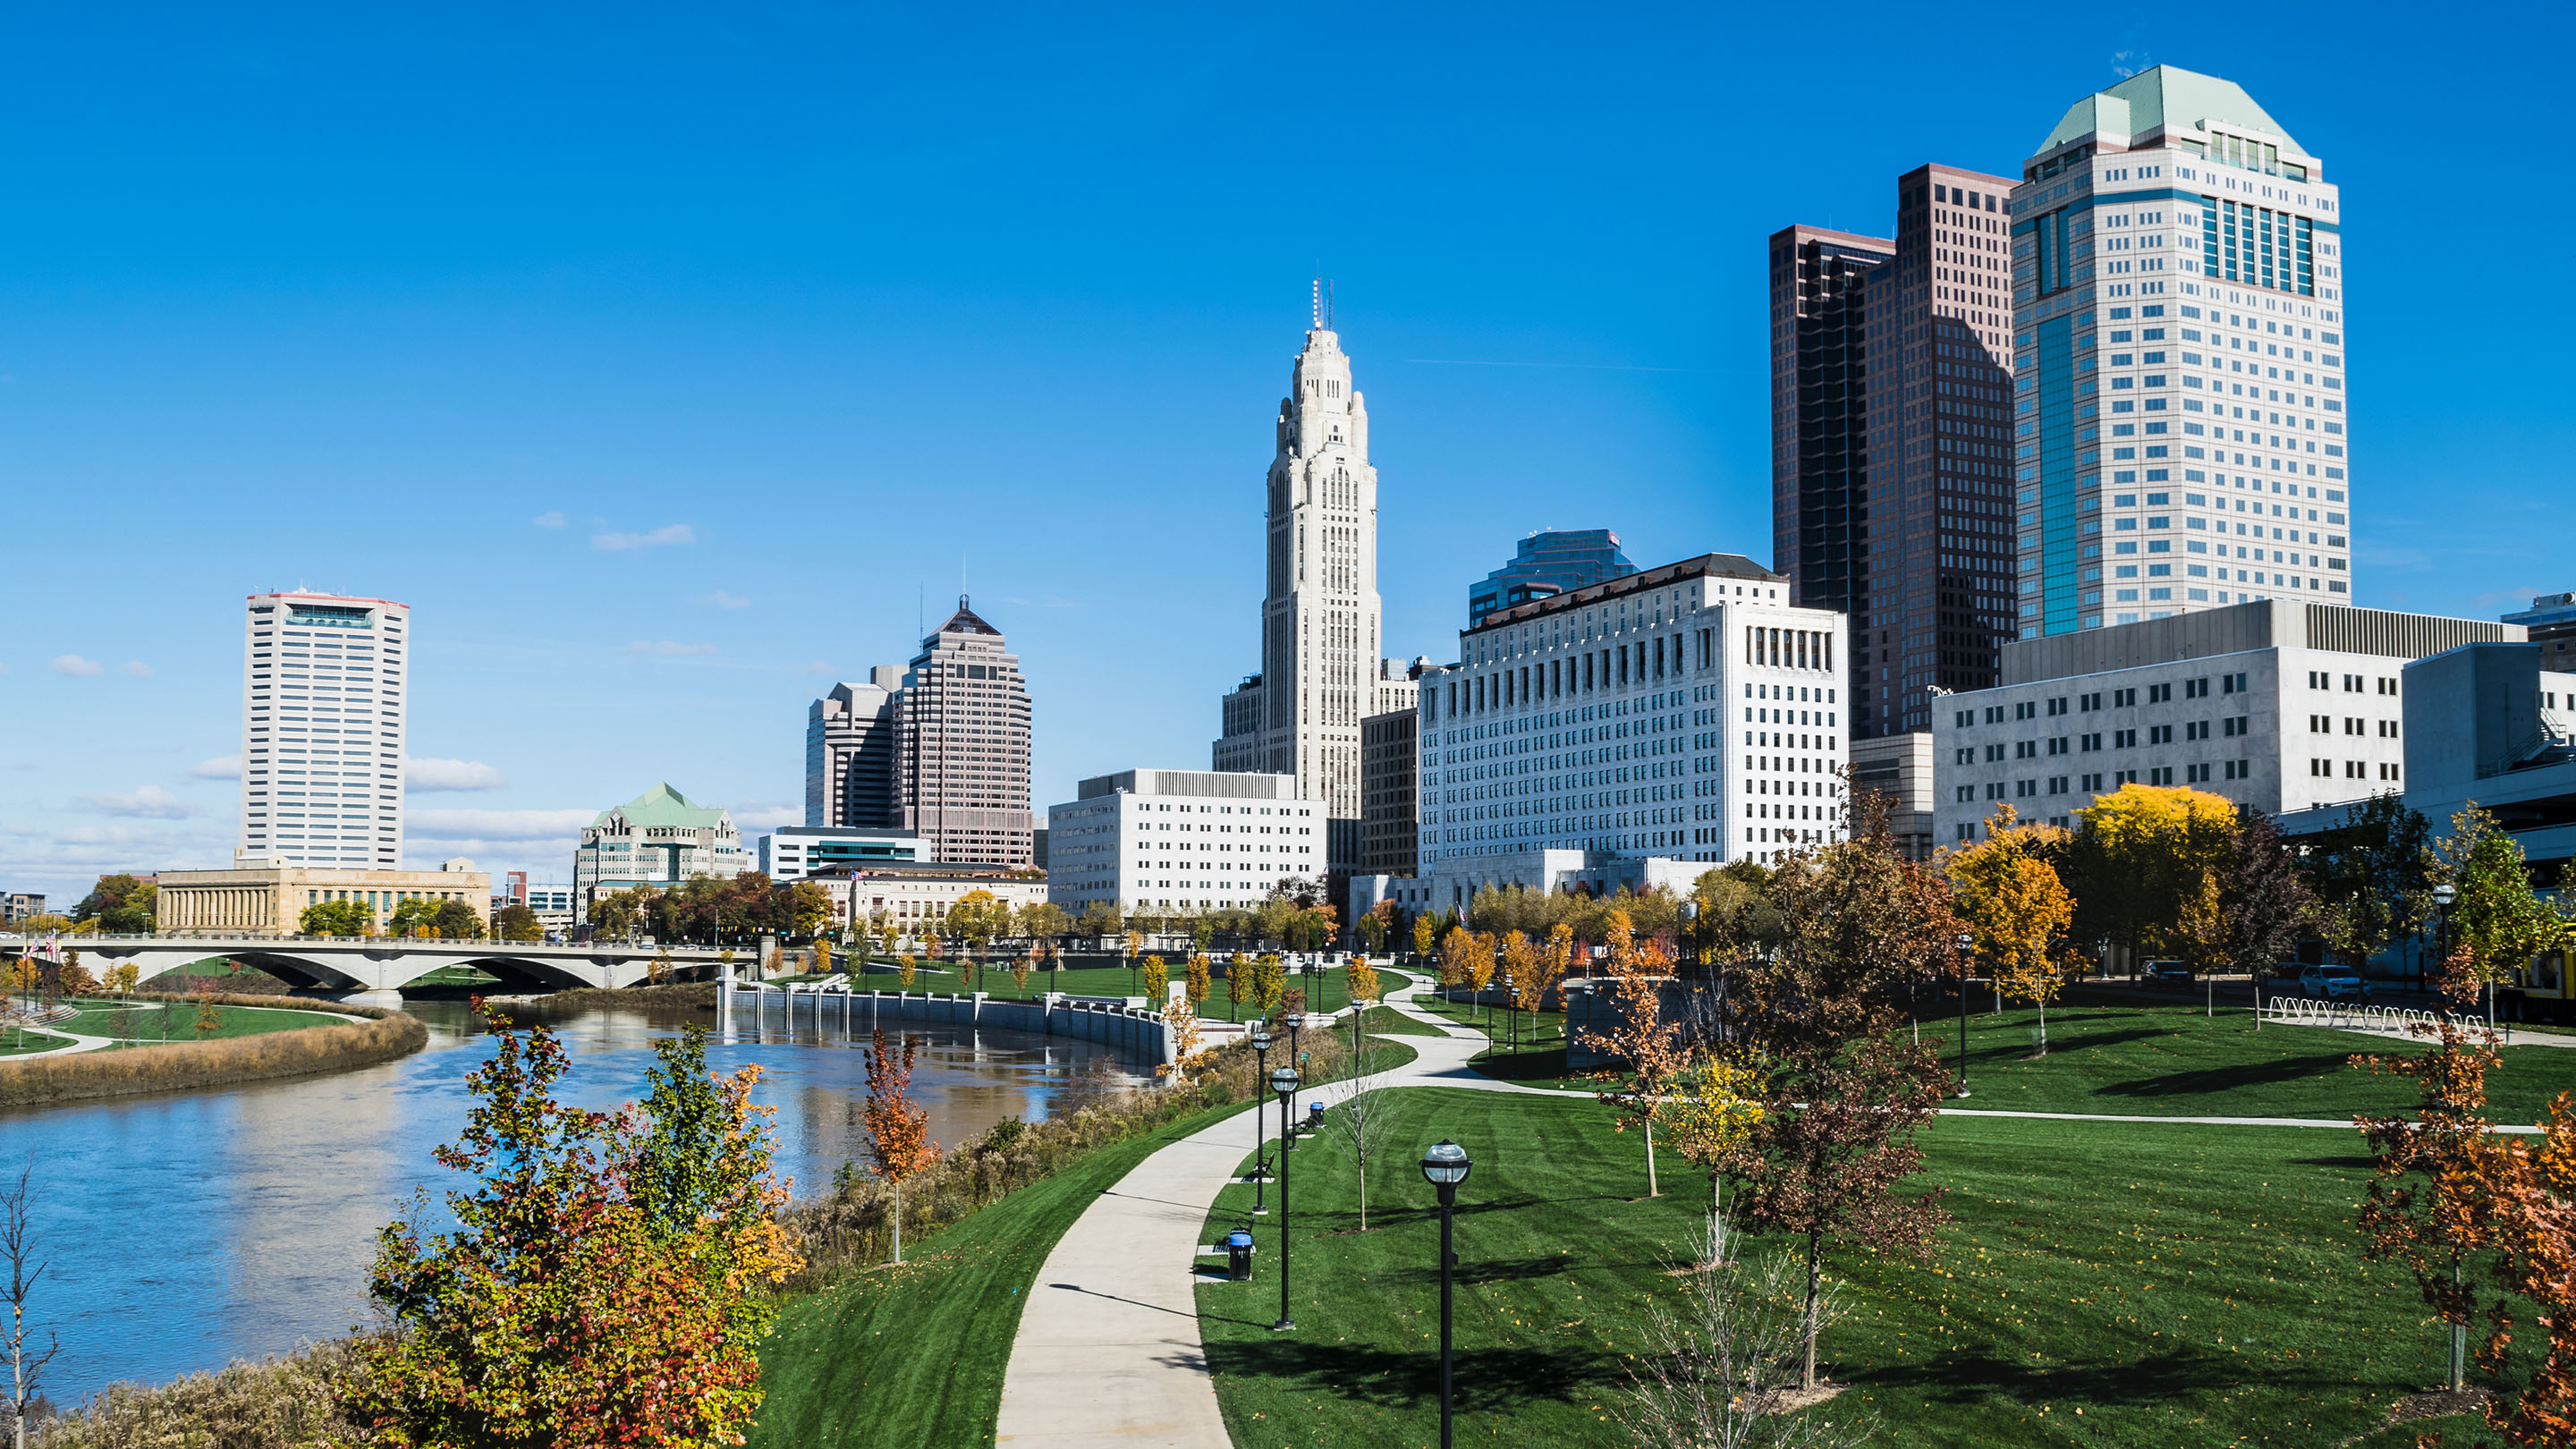 Image of downtown Columbus, Ohio